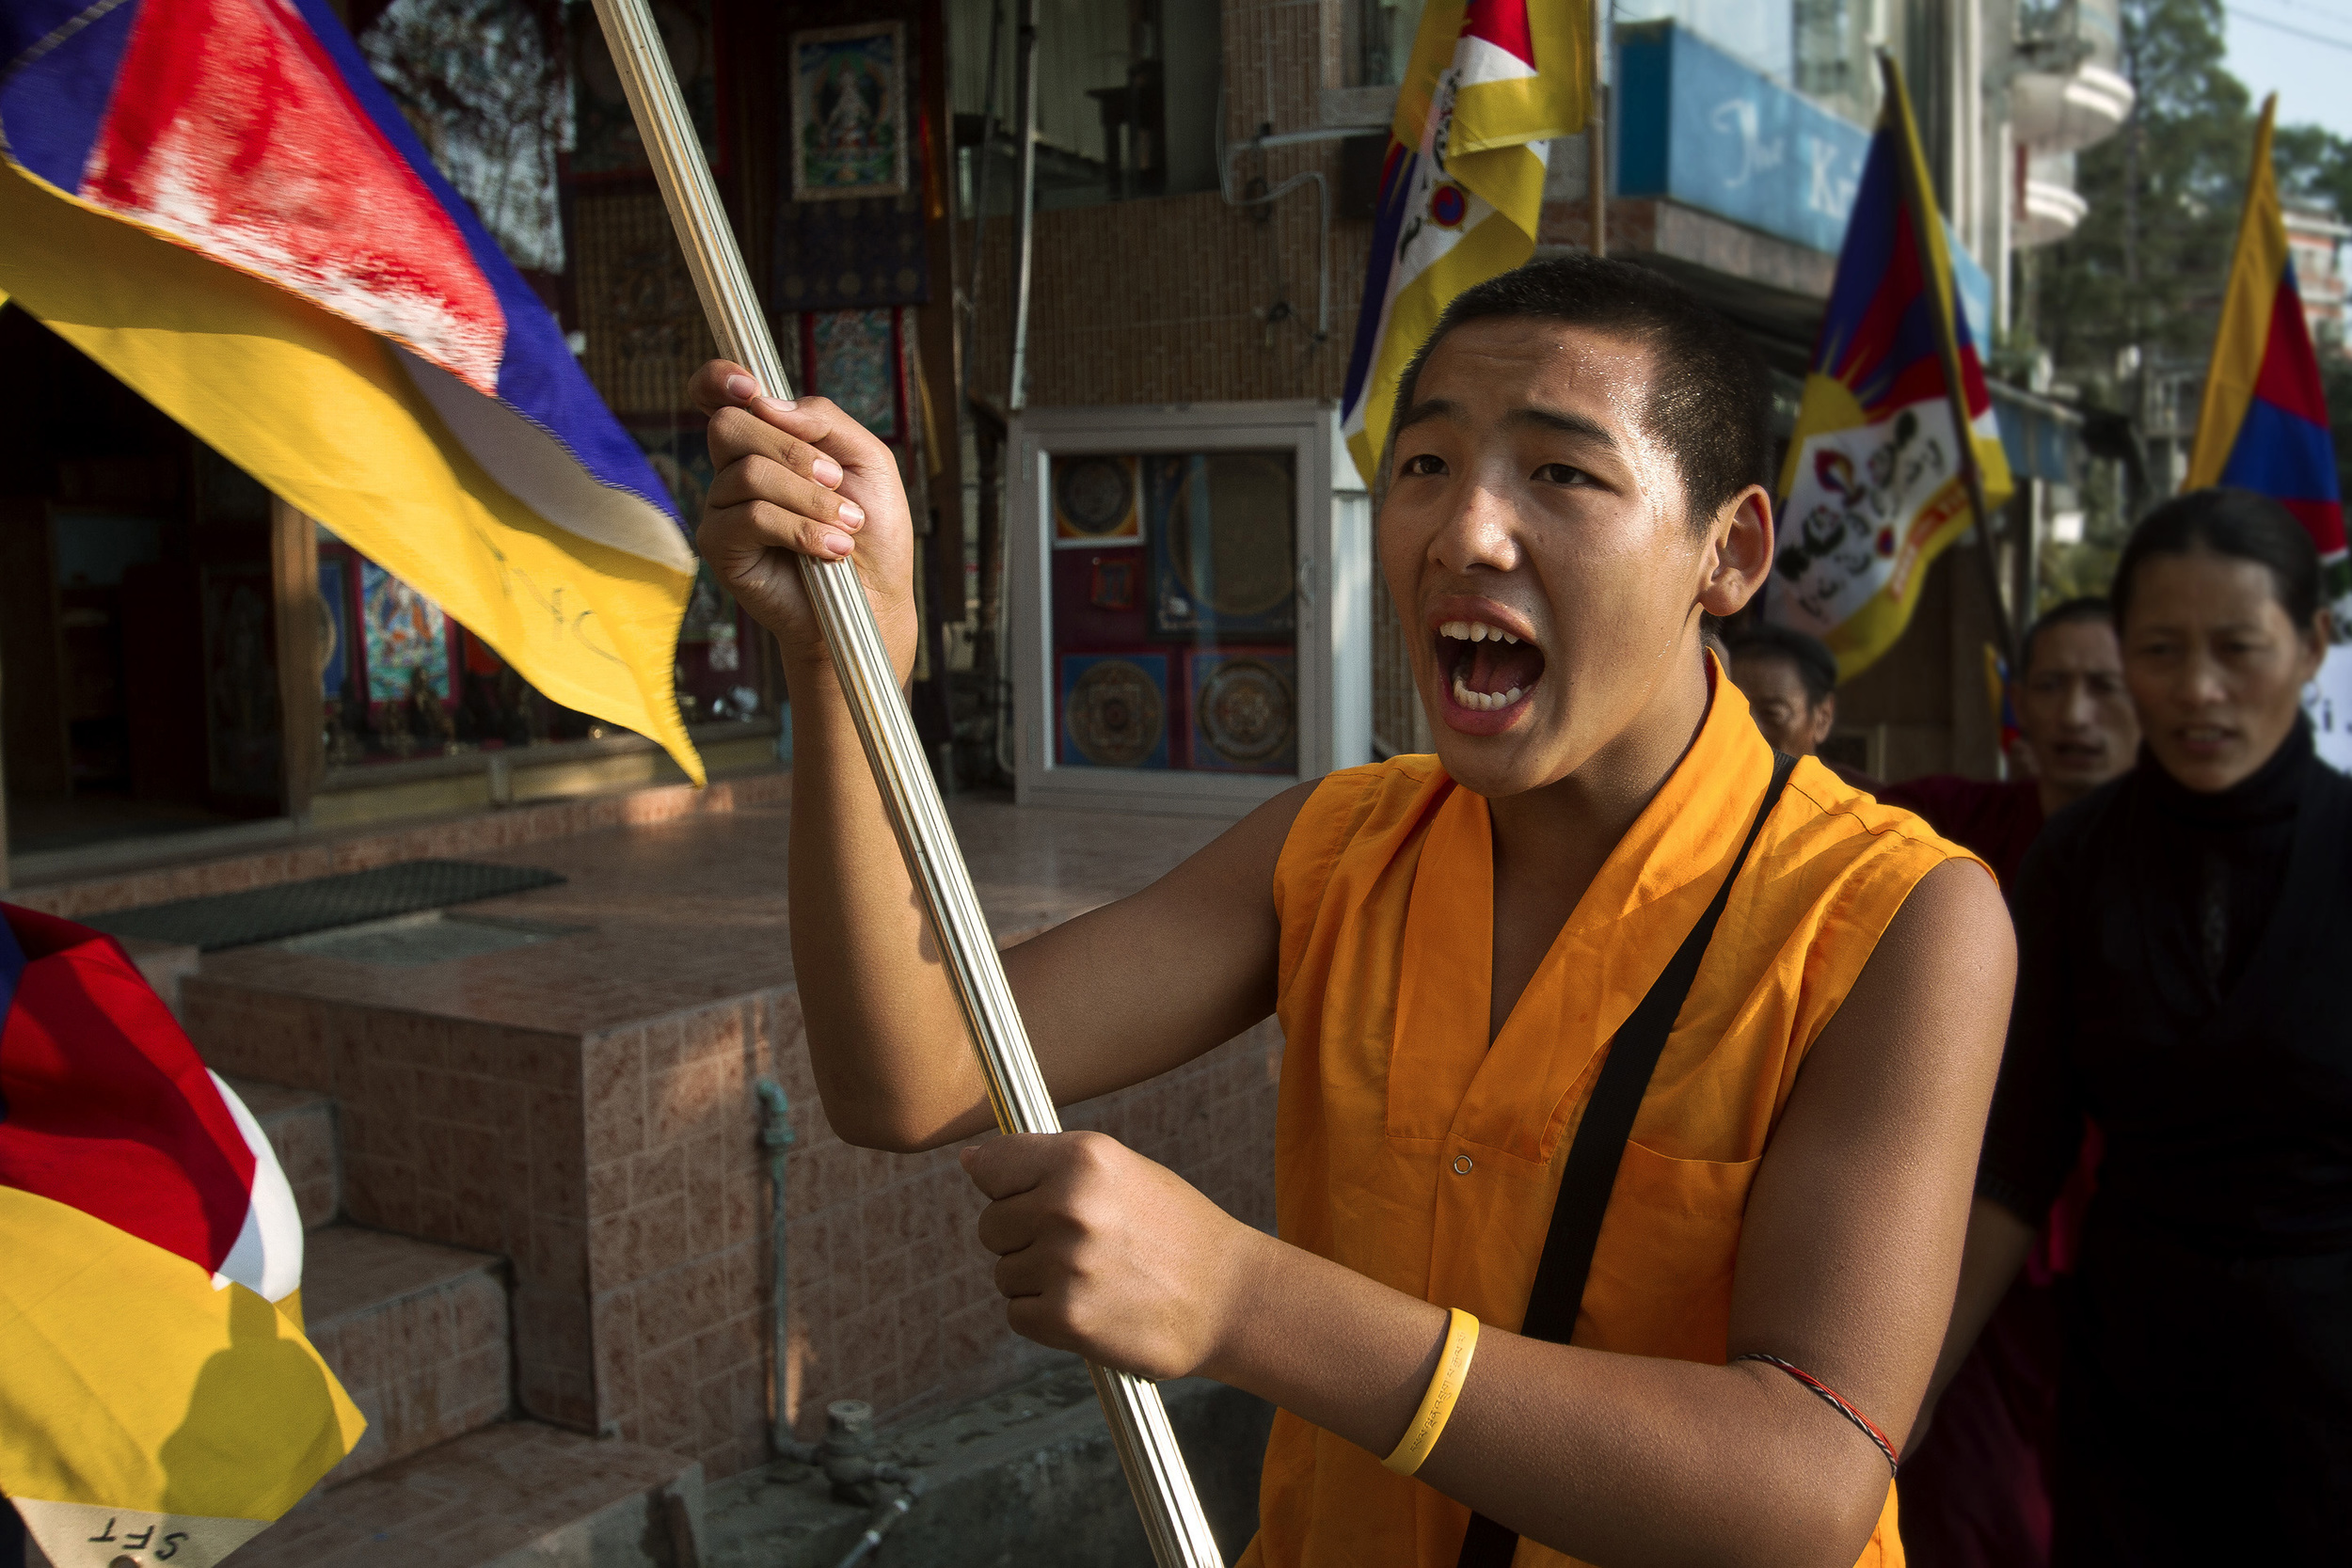 8 November, 2012 - McLeod Ganj   A young nun waves the Tibetan flag, outlawed in Tibet, during the largest of the self-immolation protests in McLeod Ganj.